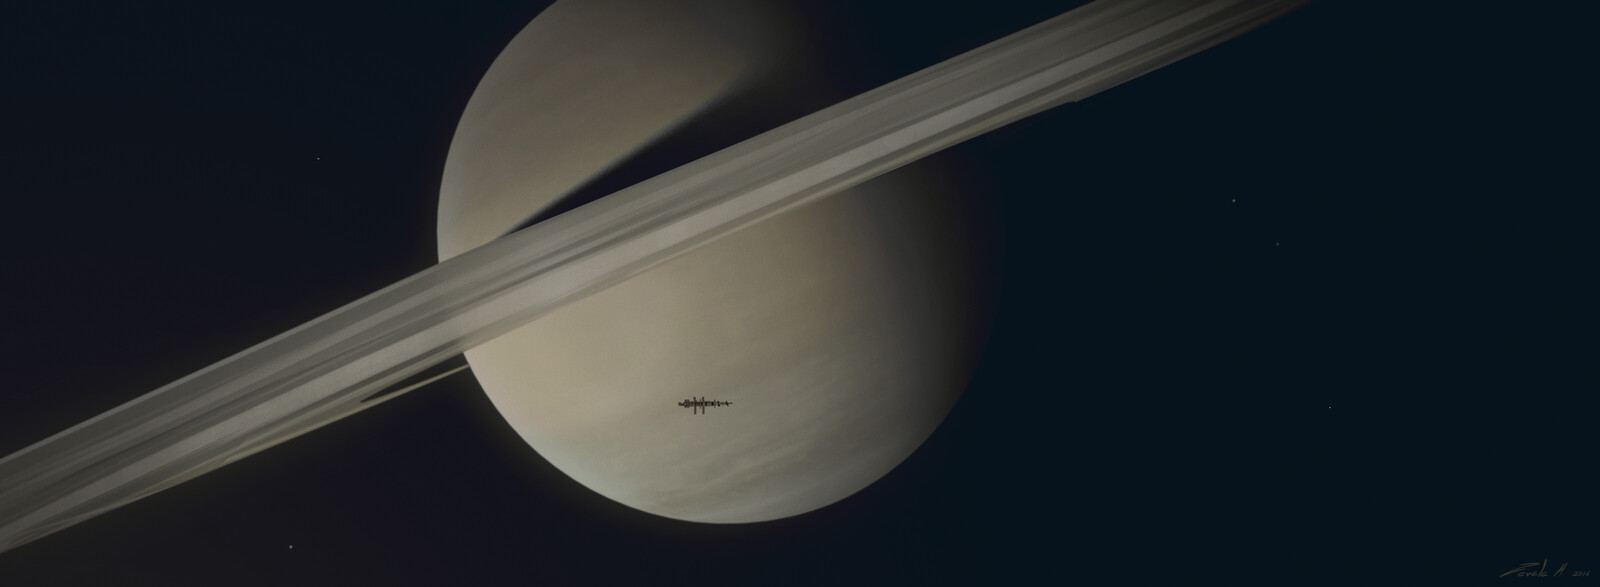 Over Saturn's Rings